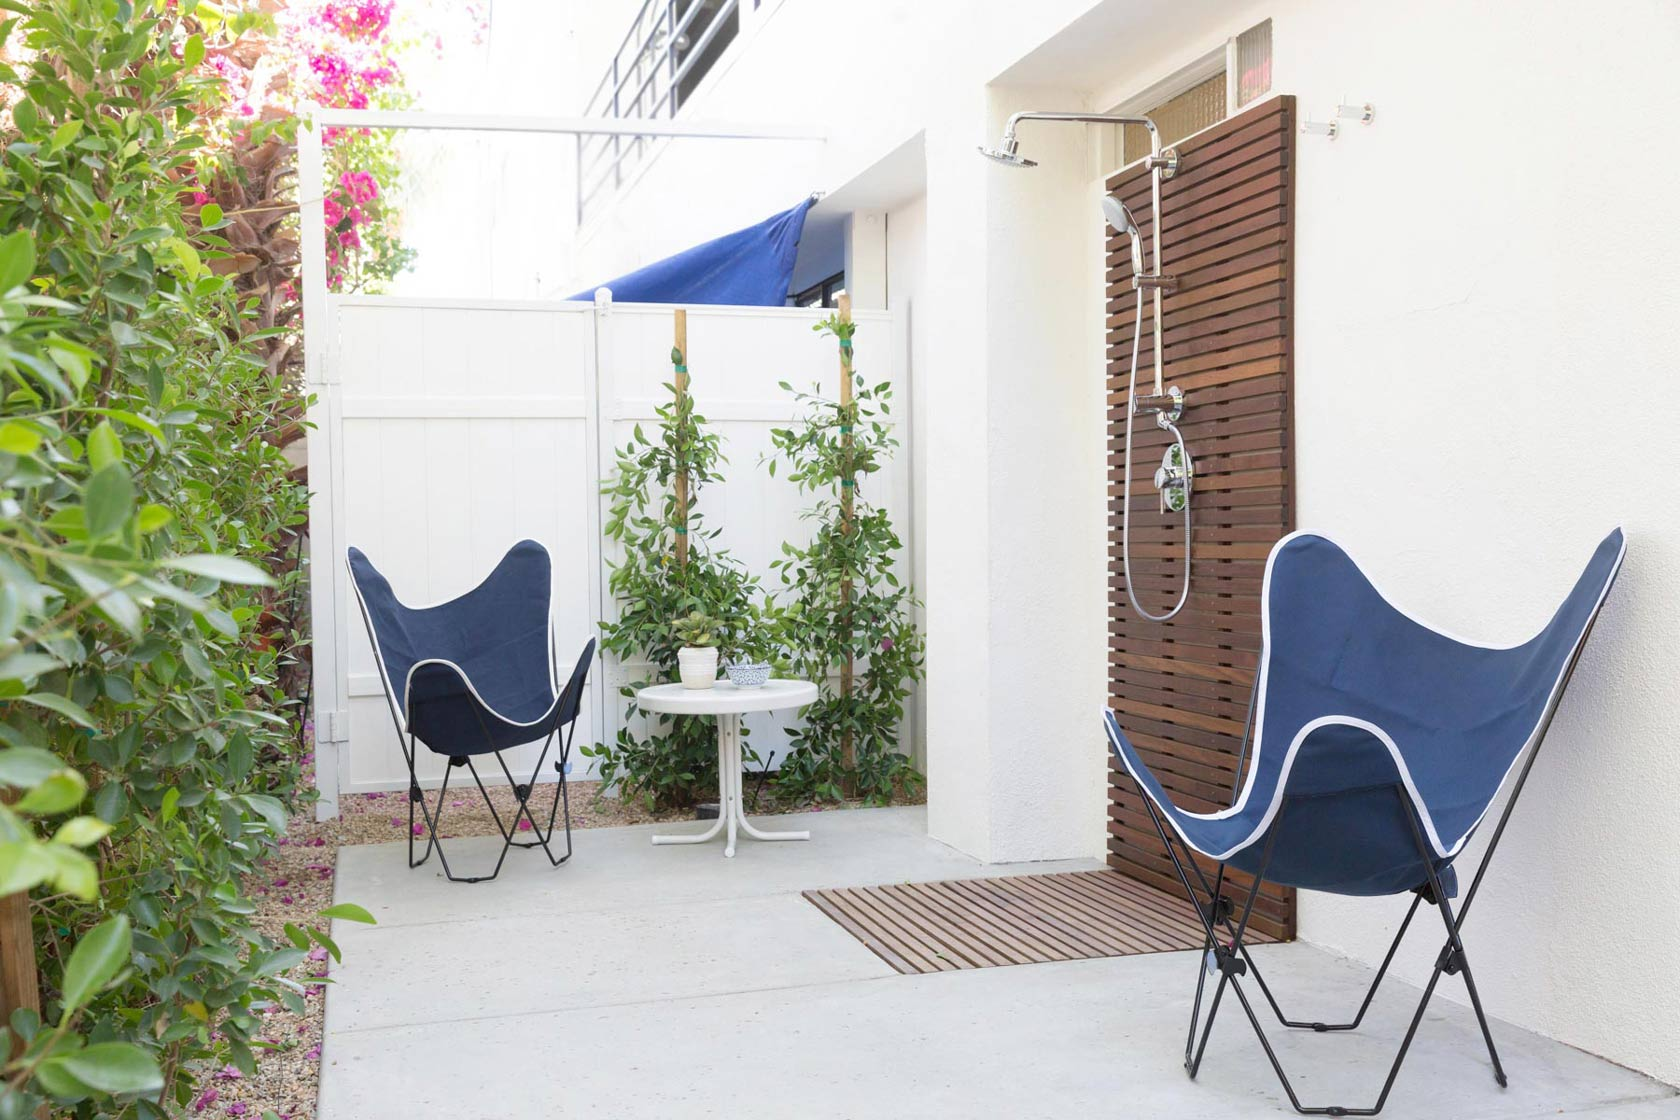 guest room patio area with outdoor shower and butterfly chairs